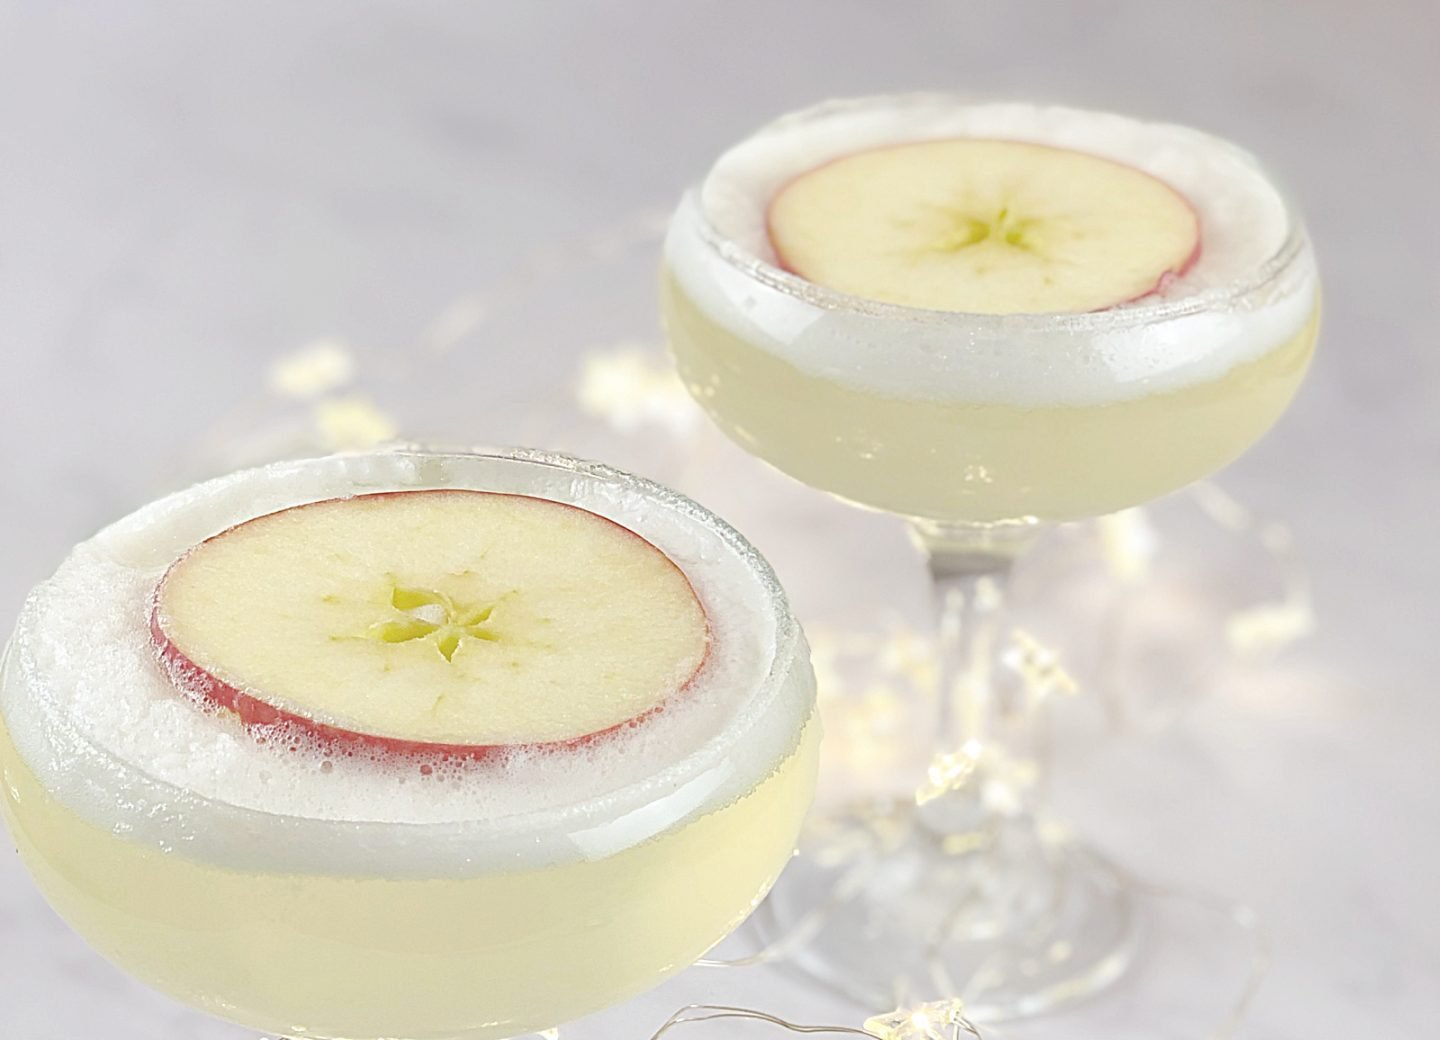 Gin and prosecco cocktail topped with elderflower foam, Easy Summer Cocktail Recipes to try for hot summers day.